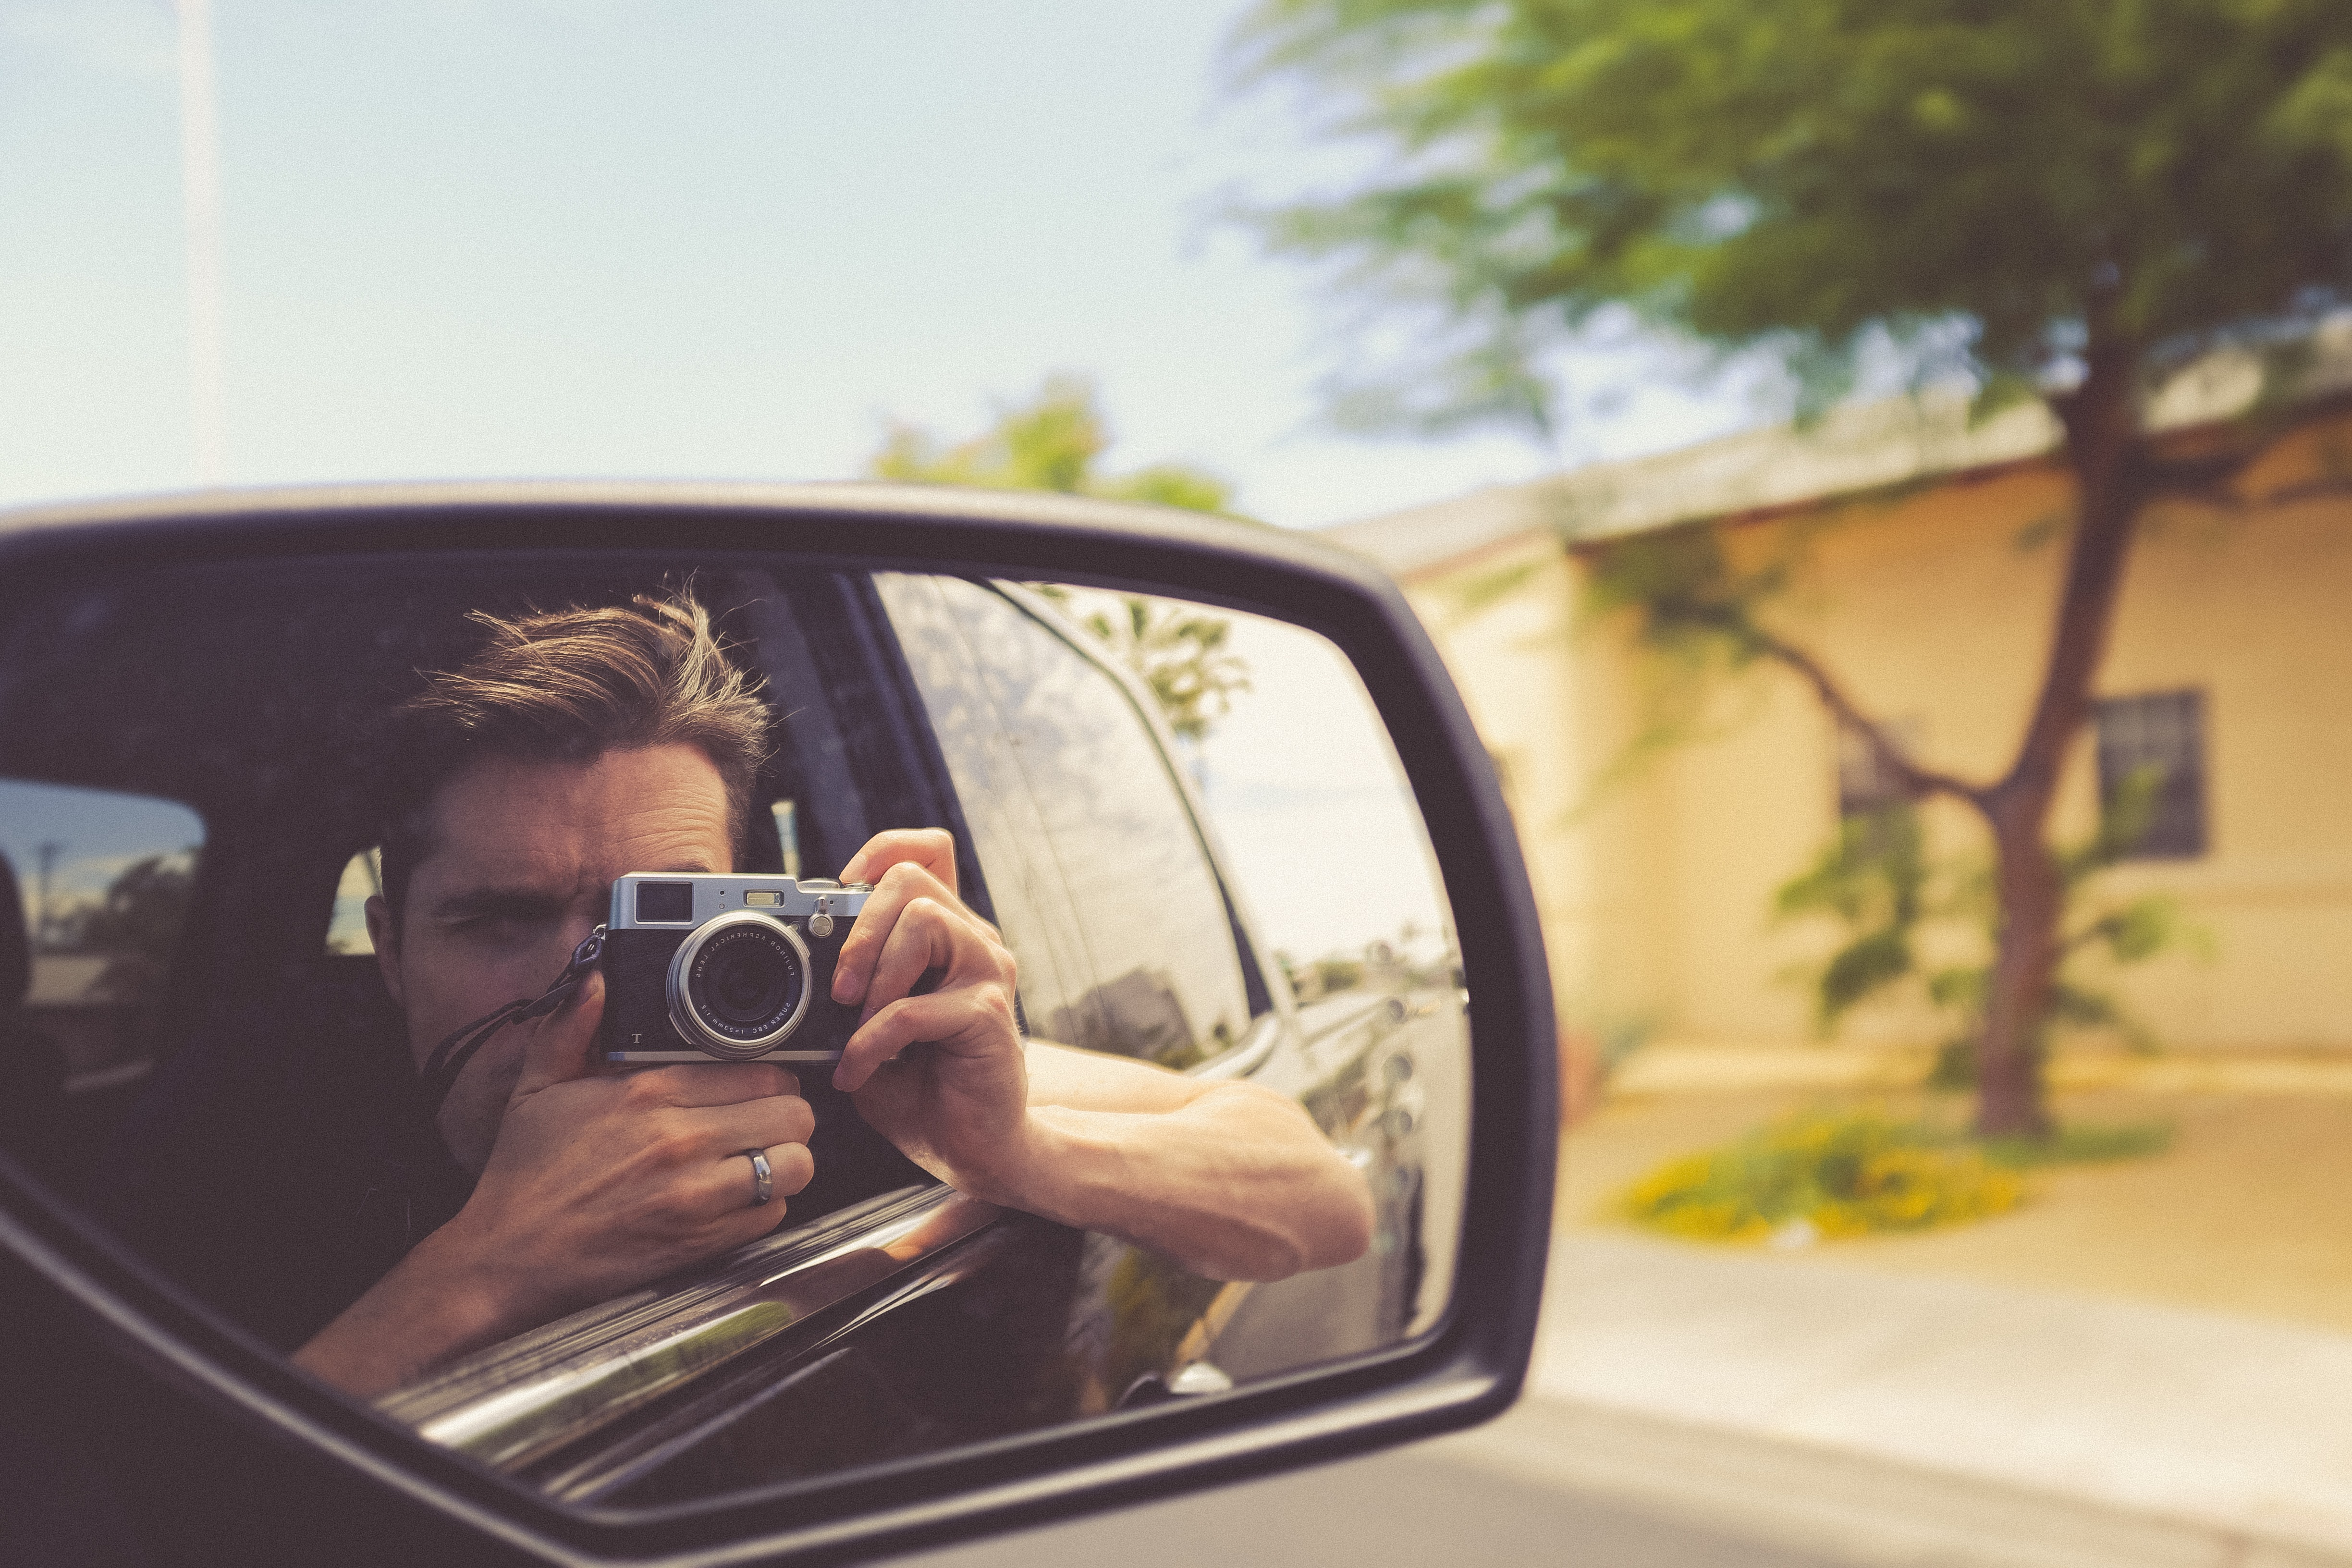 A photographer taking his self-portrait in the passenger side mirror.